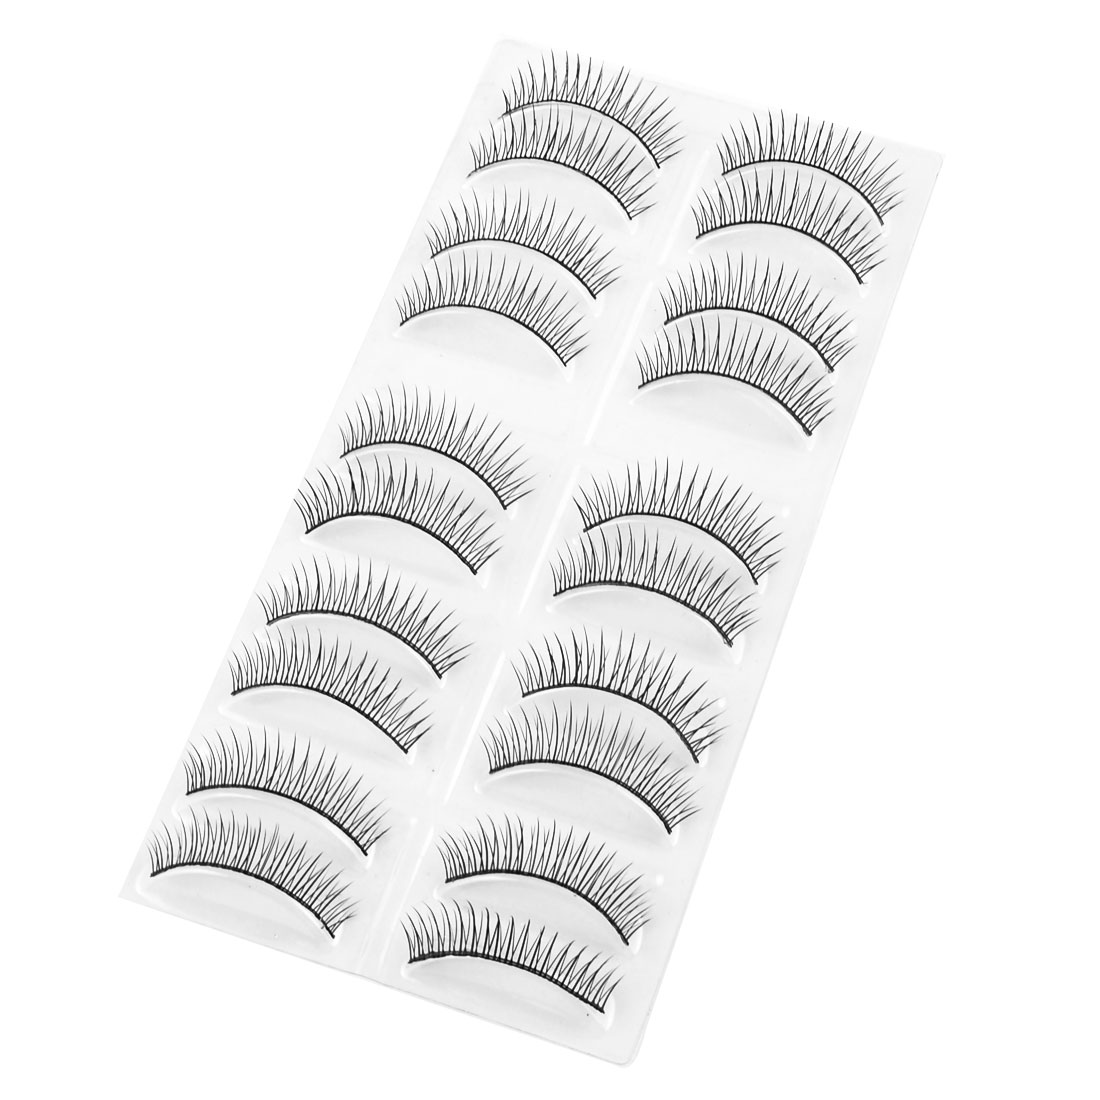 10 Pairs Costume Ball Makeup Black Long Thick Curly False Eyelashes for Women